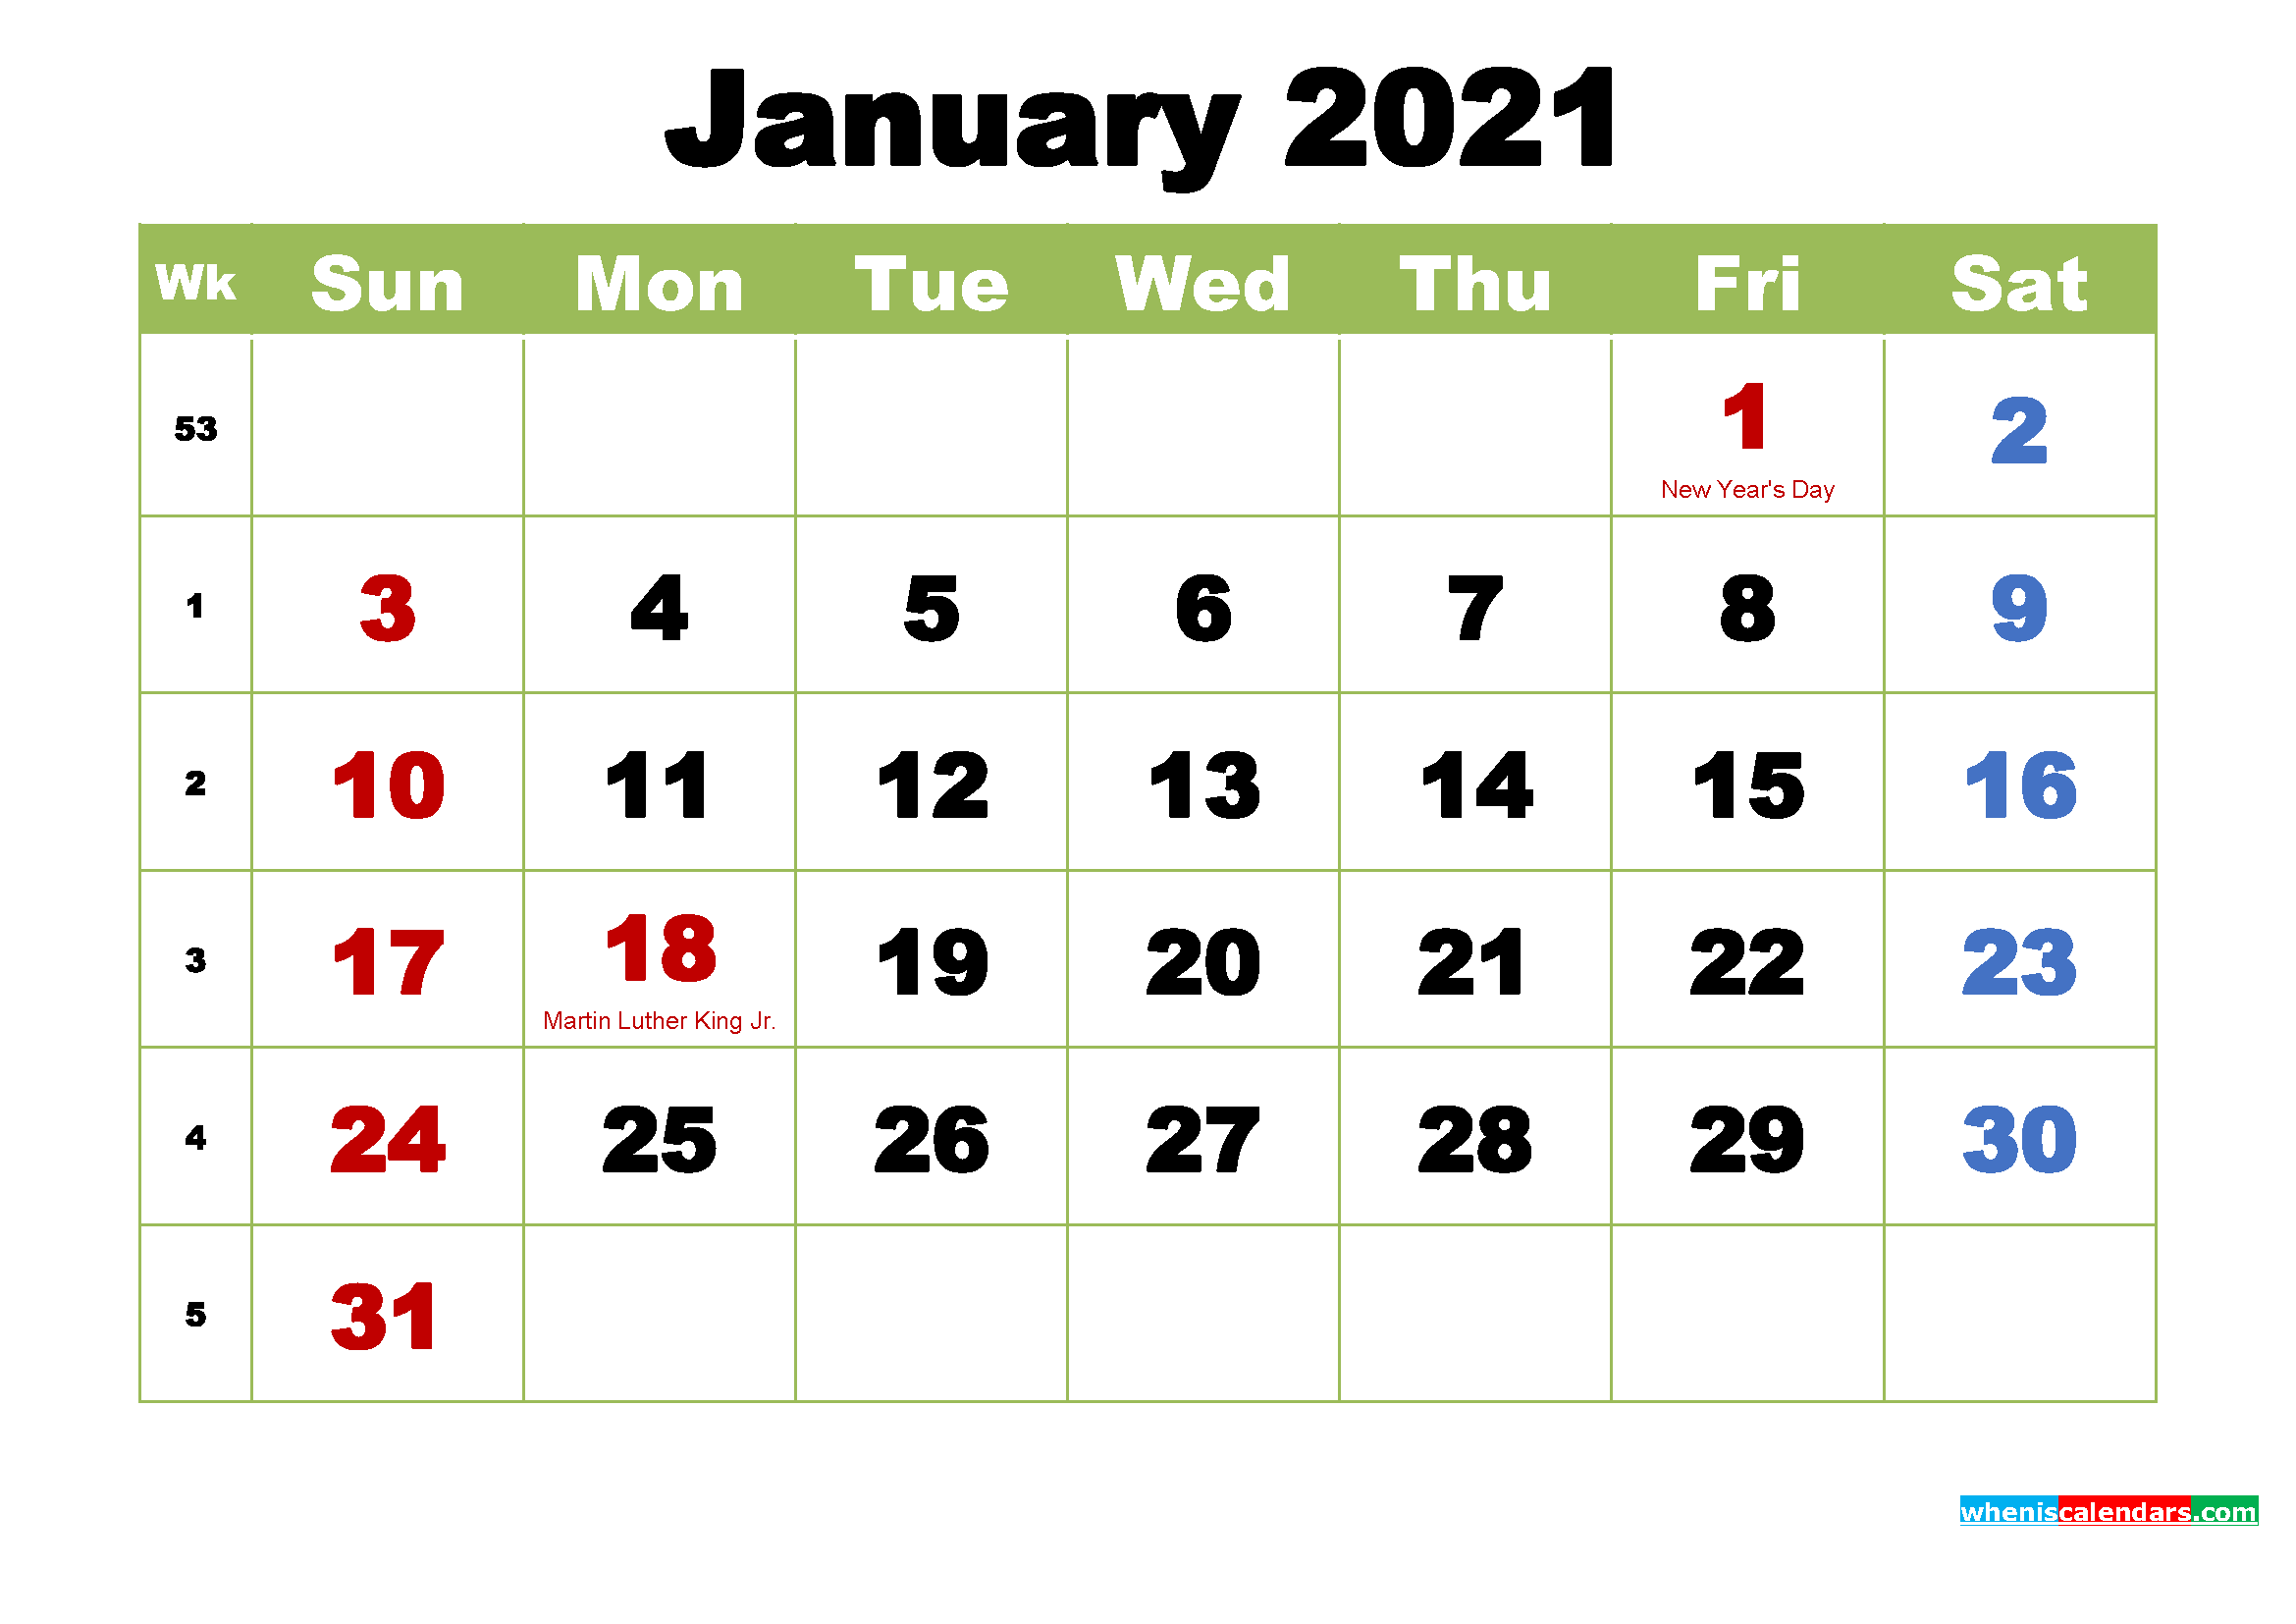 January 2021 Calendar with Holidays Wallpaper